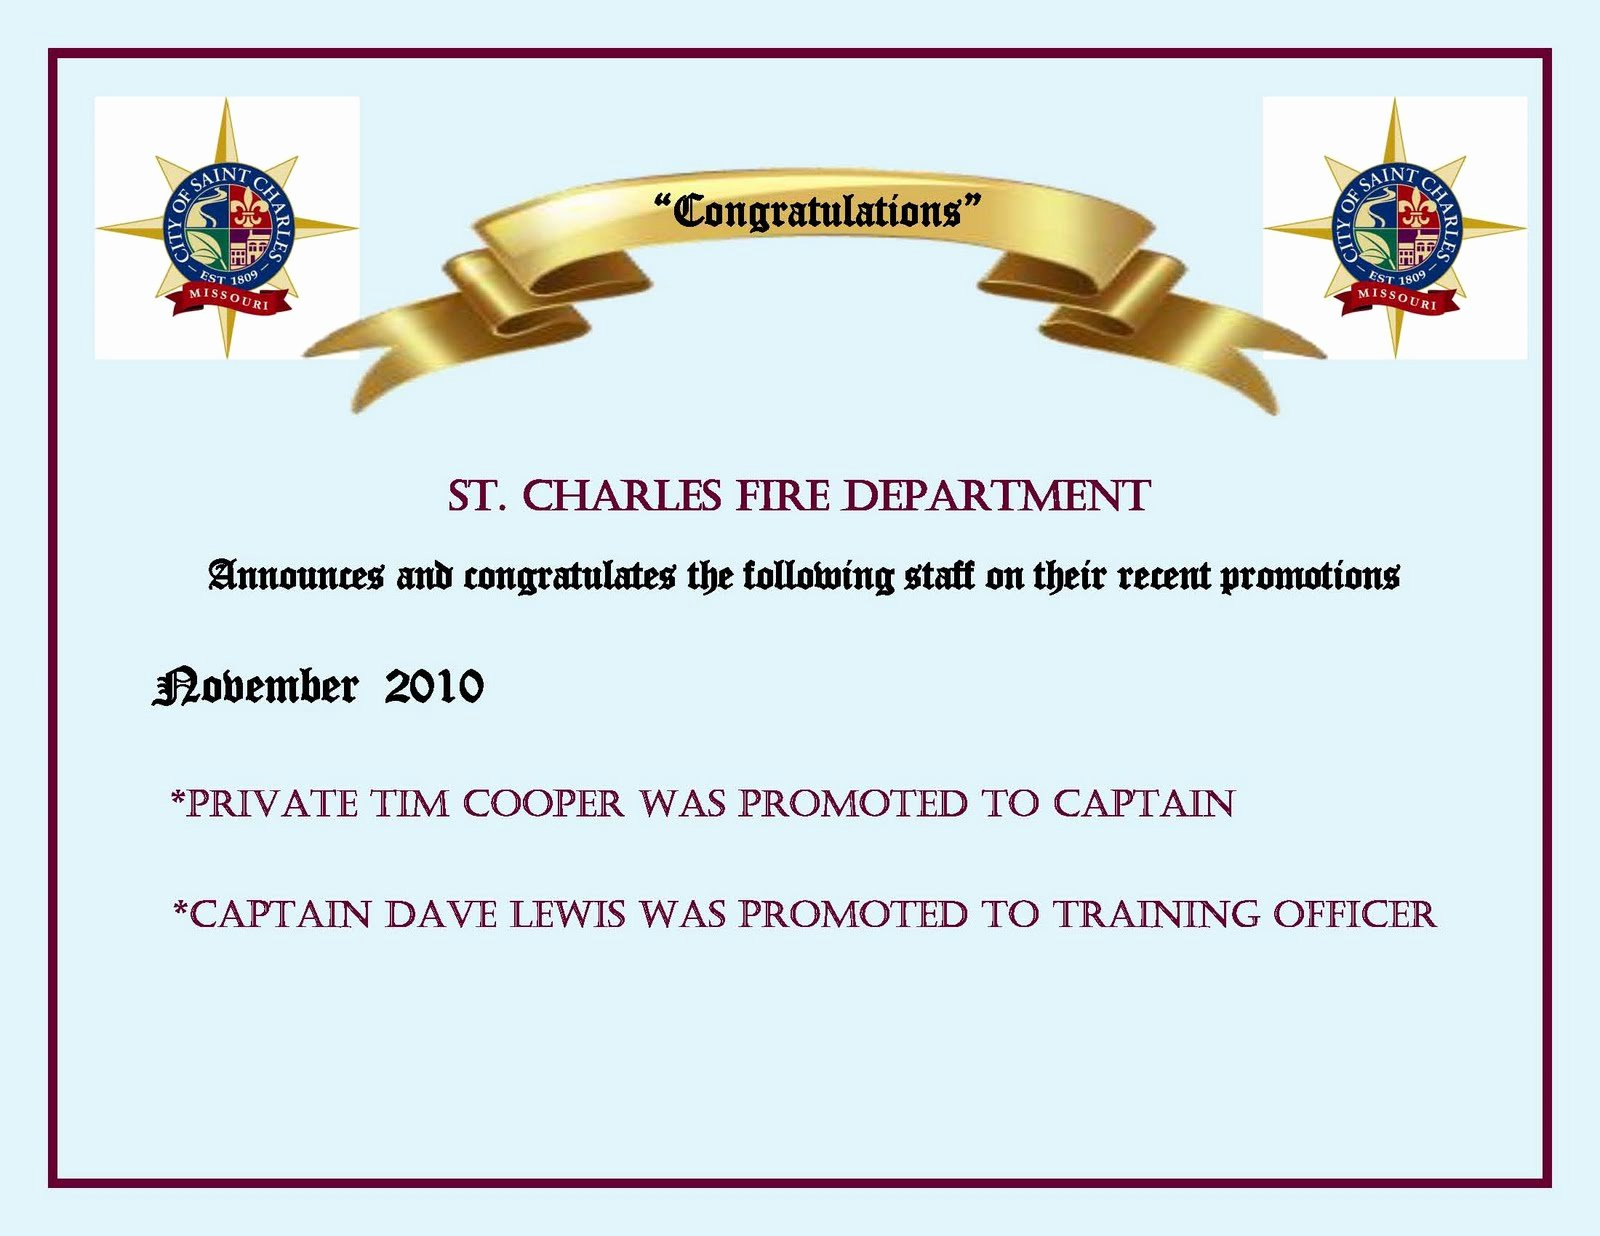 Promotion Announcement Letters New St Charles Fire Department Promotion Announcement